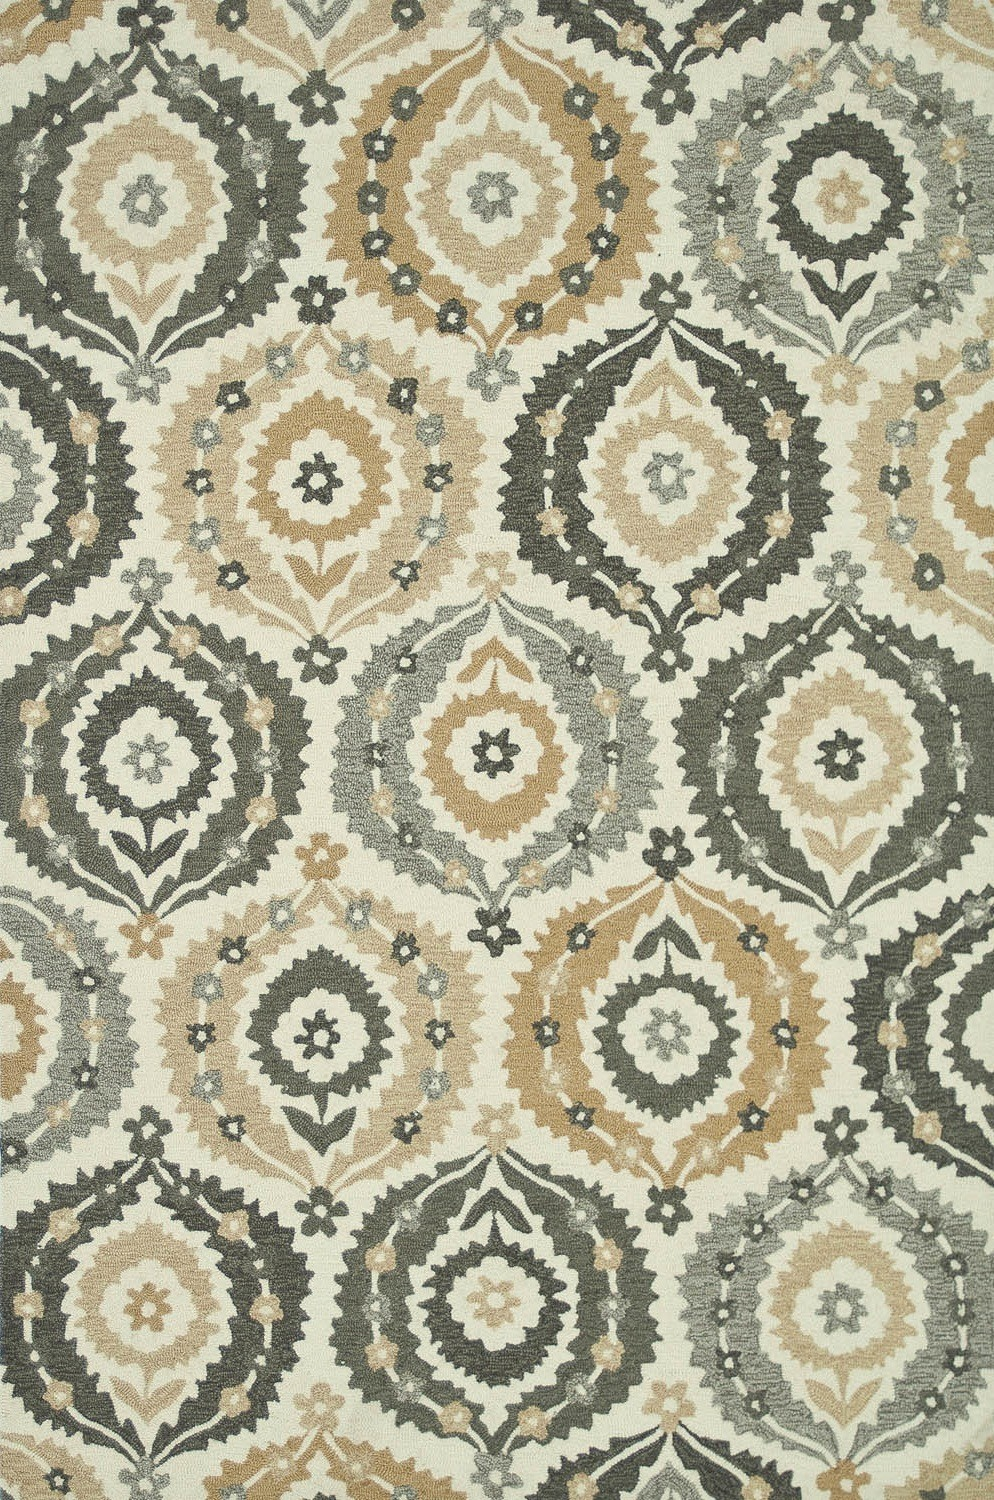 charming Loloi Rugs Francesca Collection FC 26 IVORY or GRAPHITE for floor cover ideas